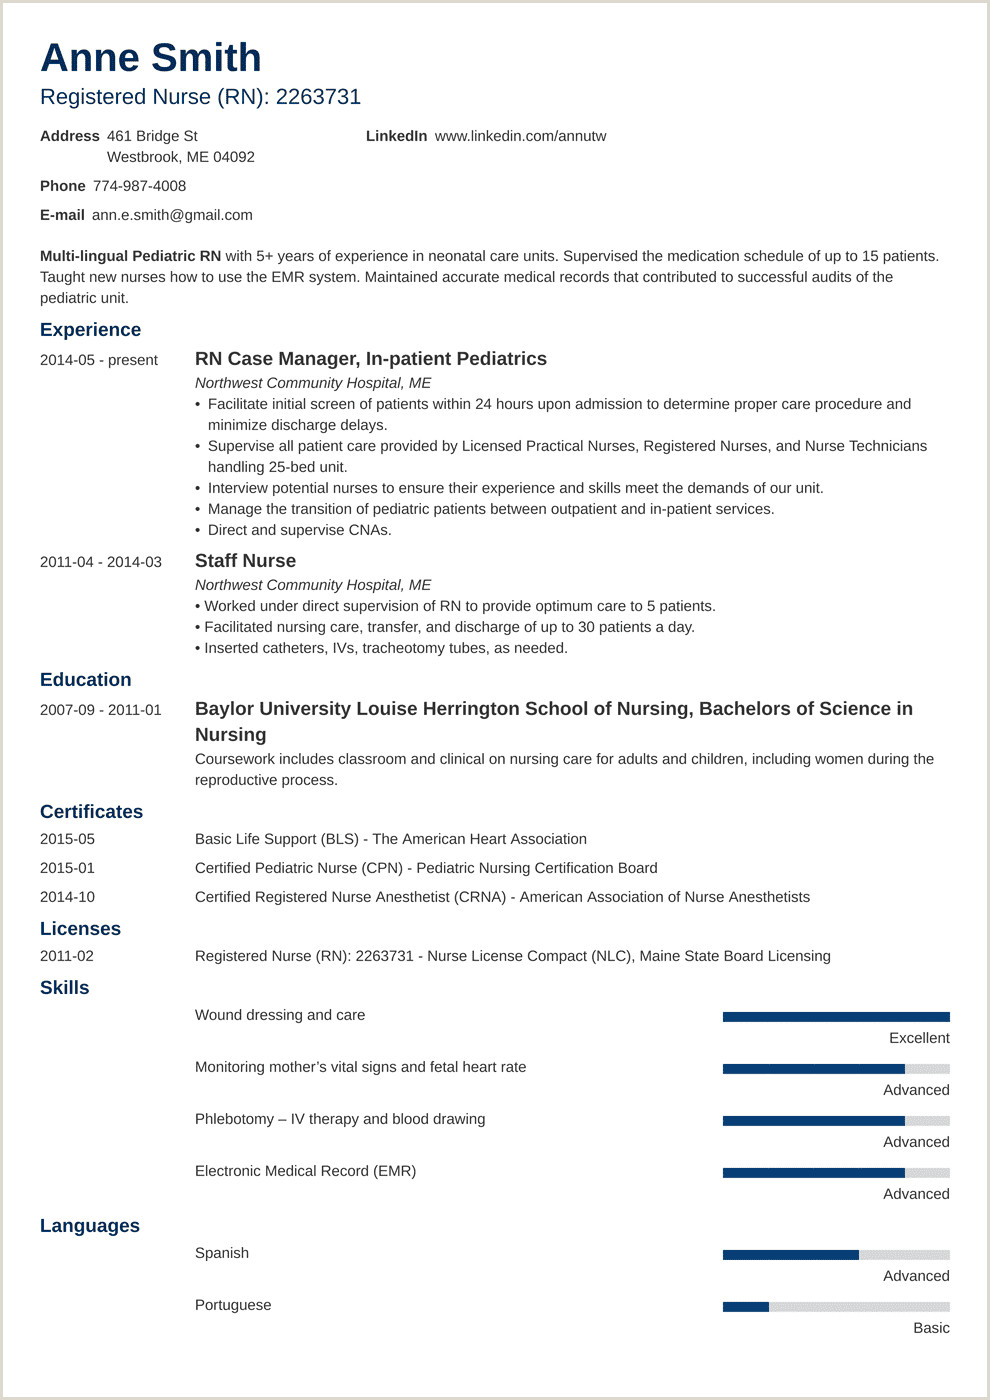 Nursing Resume Template & Guide [Examples of Experience